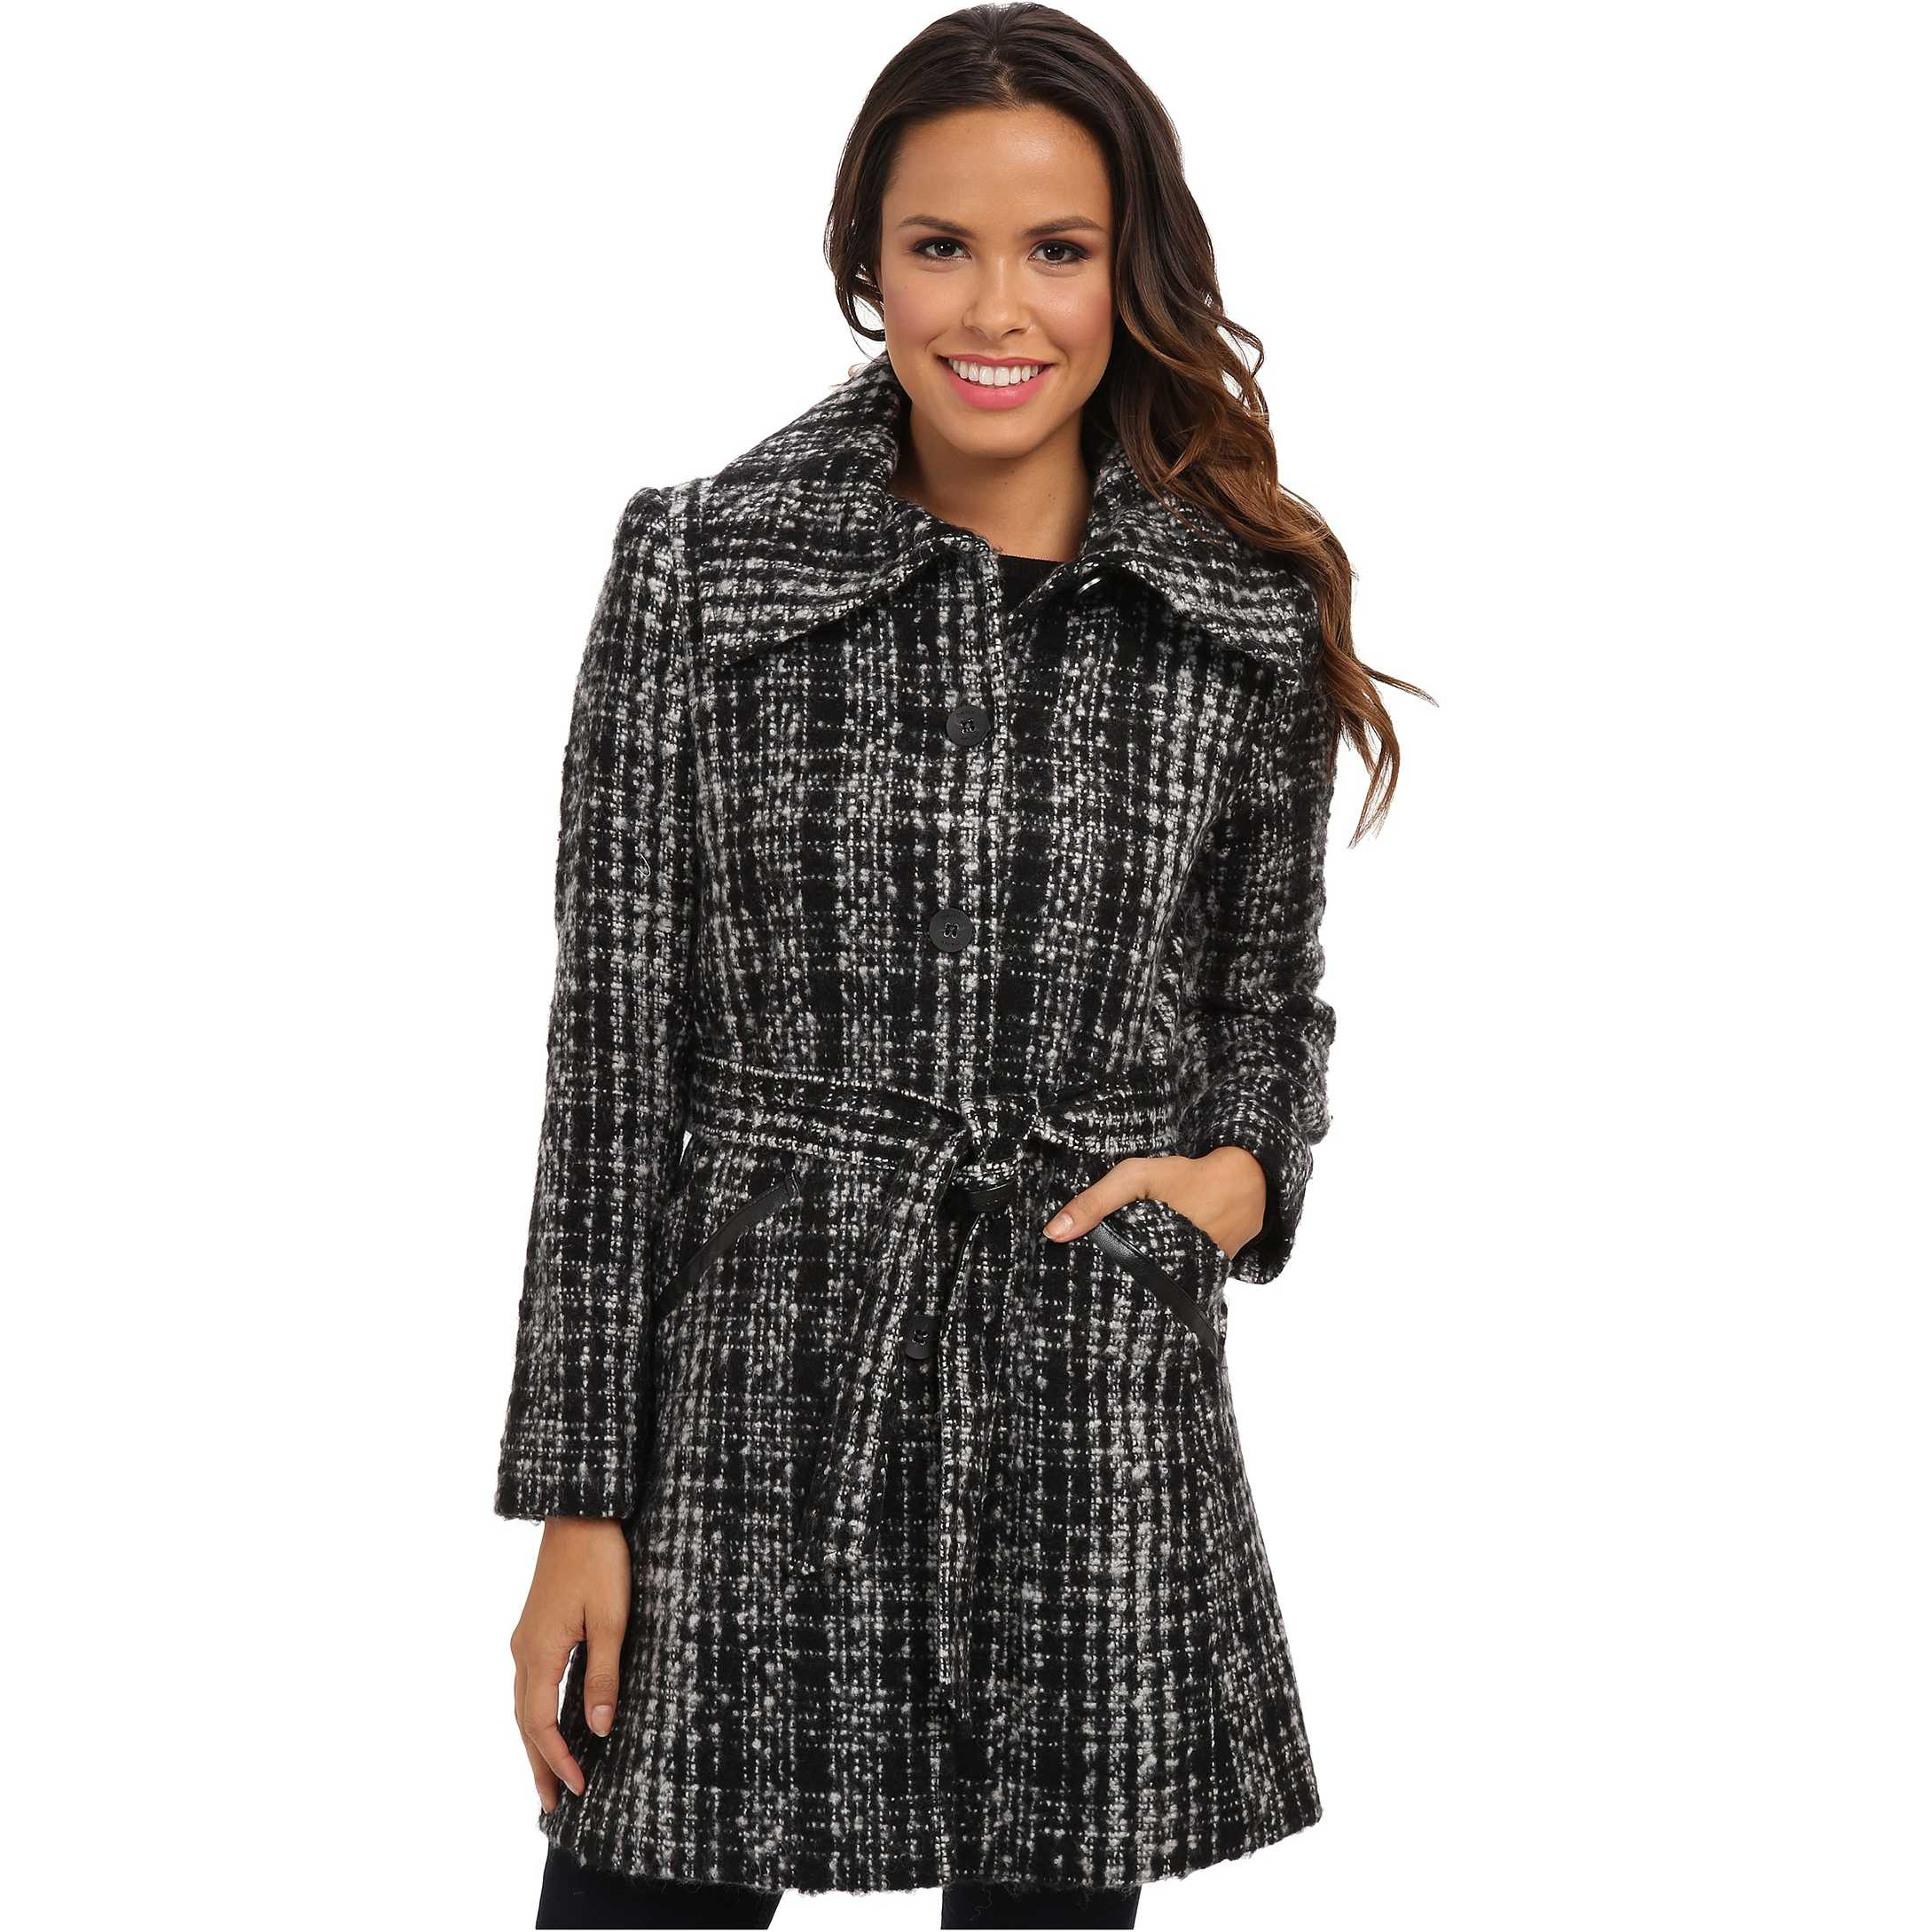 DKNY Novelty Tweed Trench 49212X-Y4 Black/White trench femei